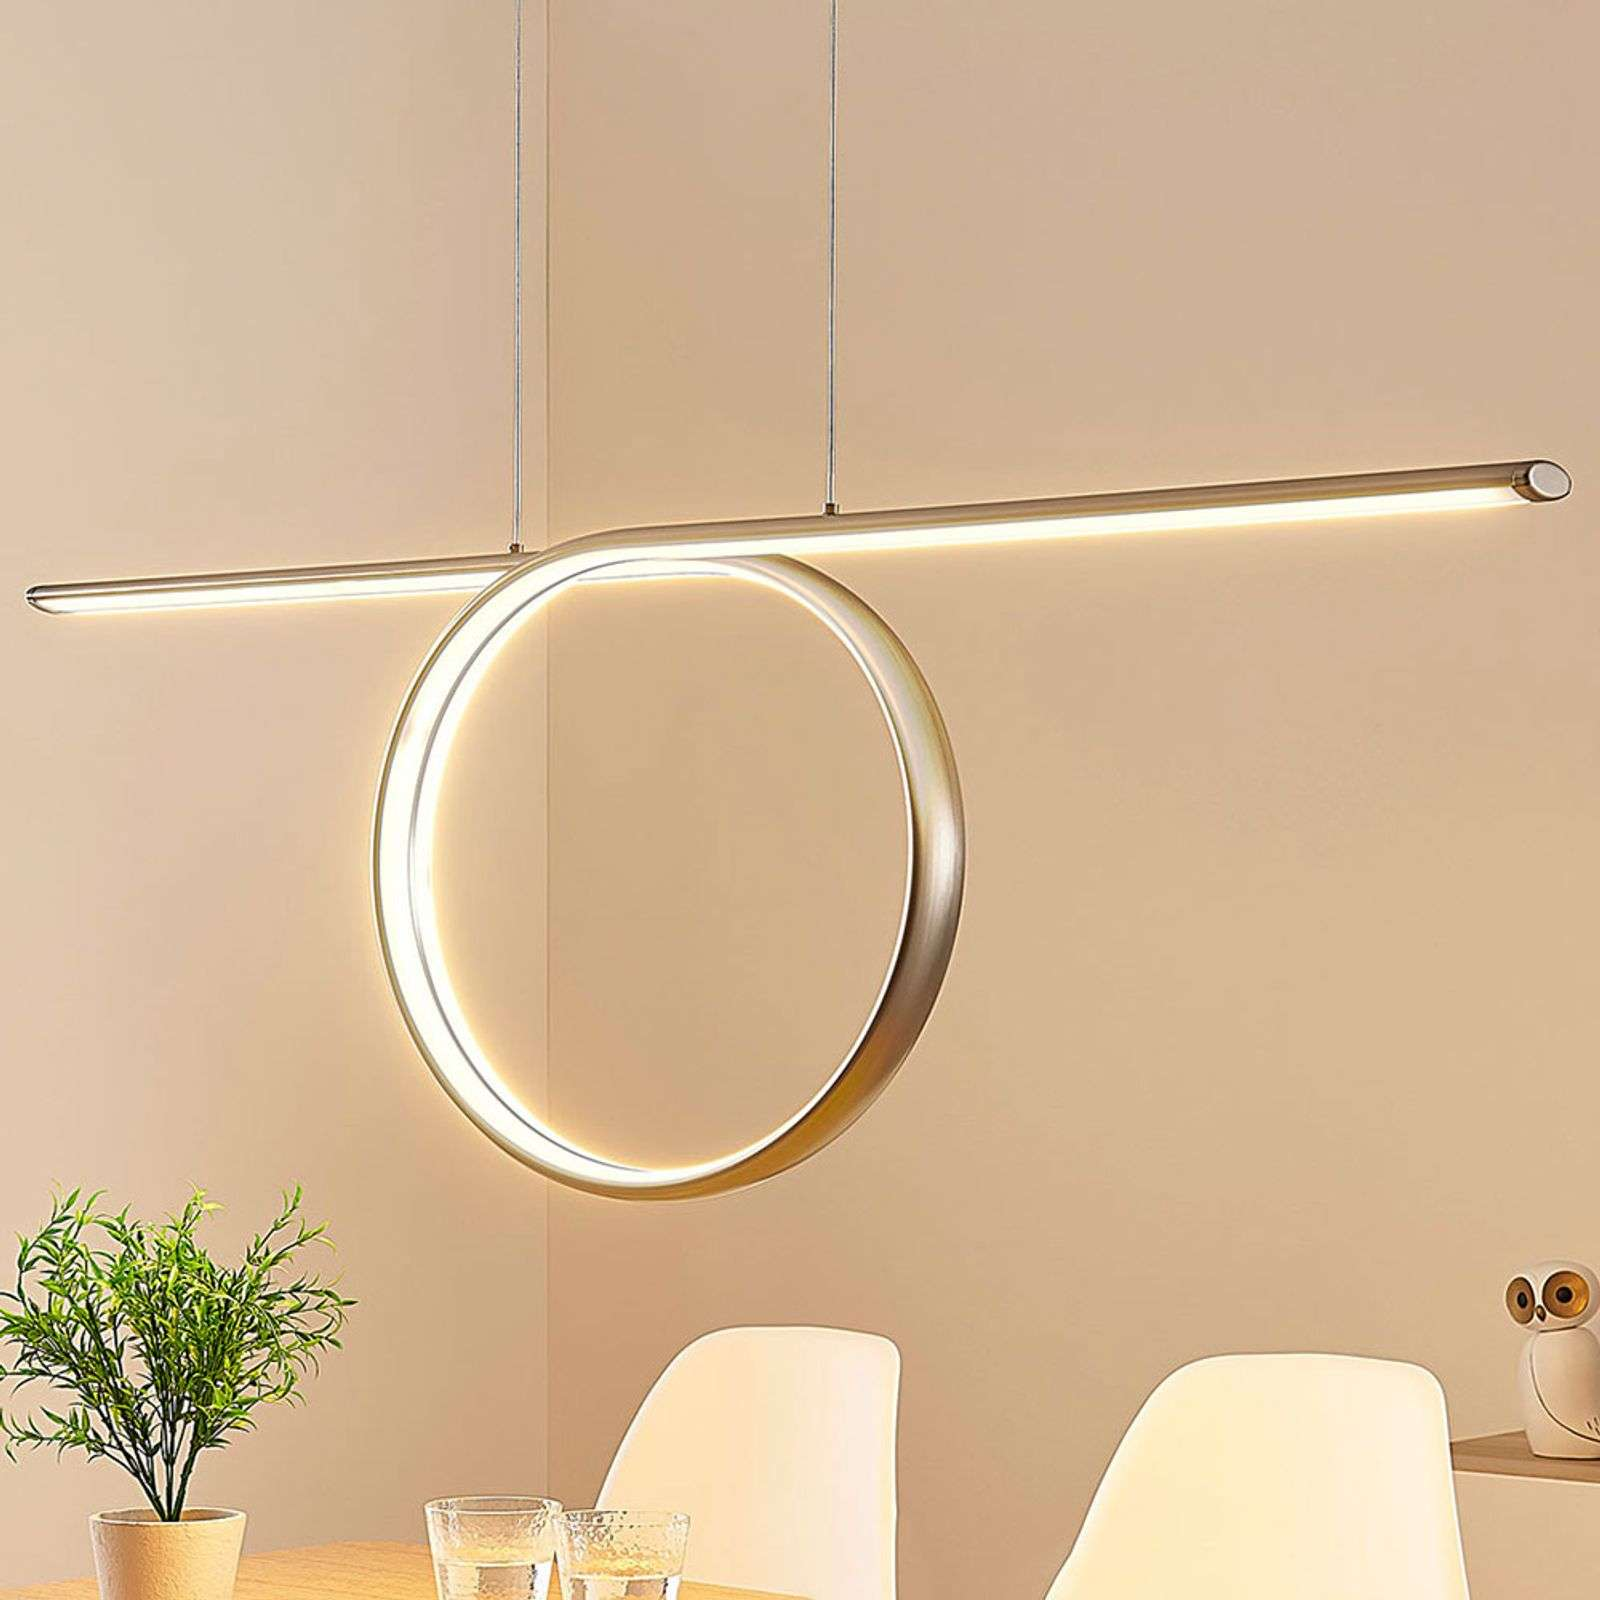 Tani - suspension LED en forme de boucle